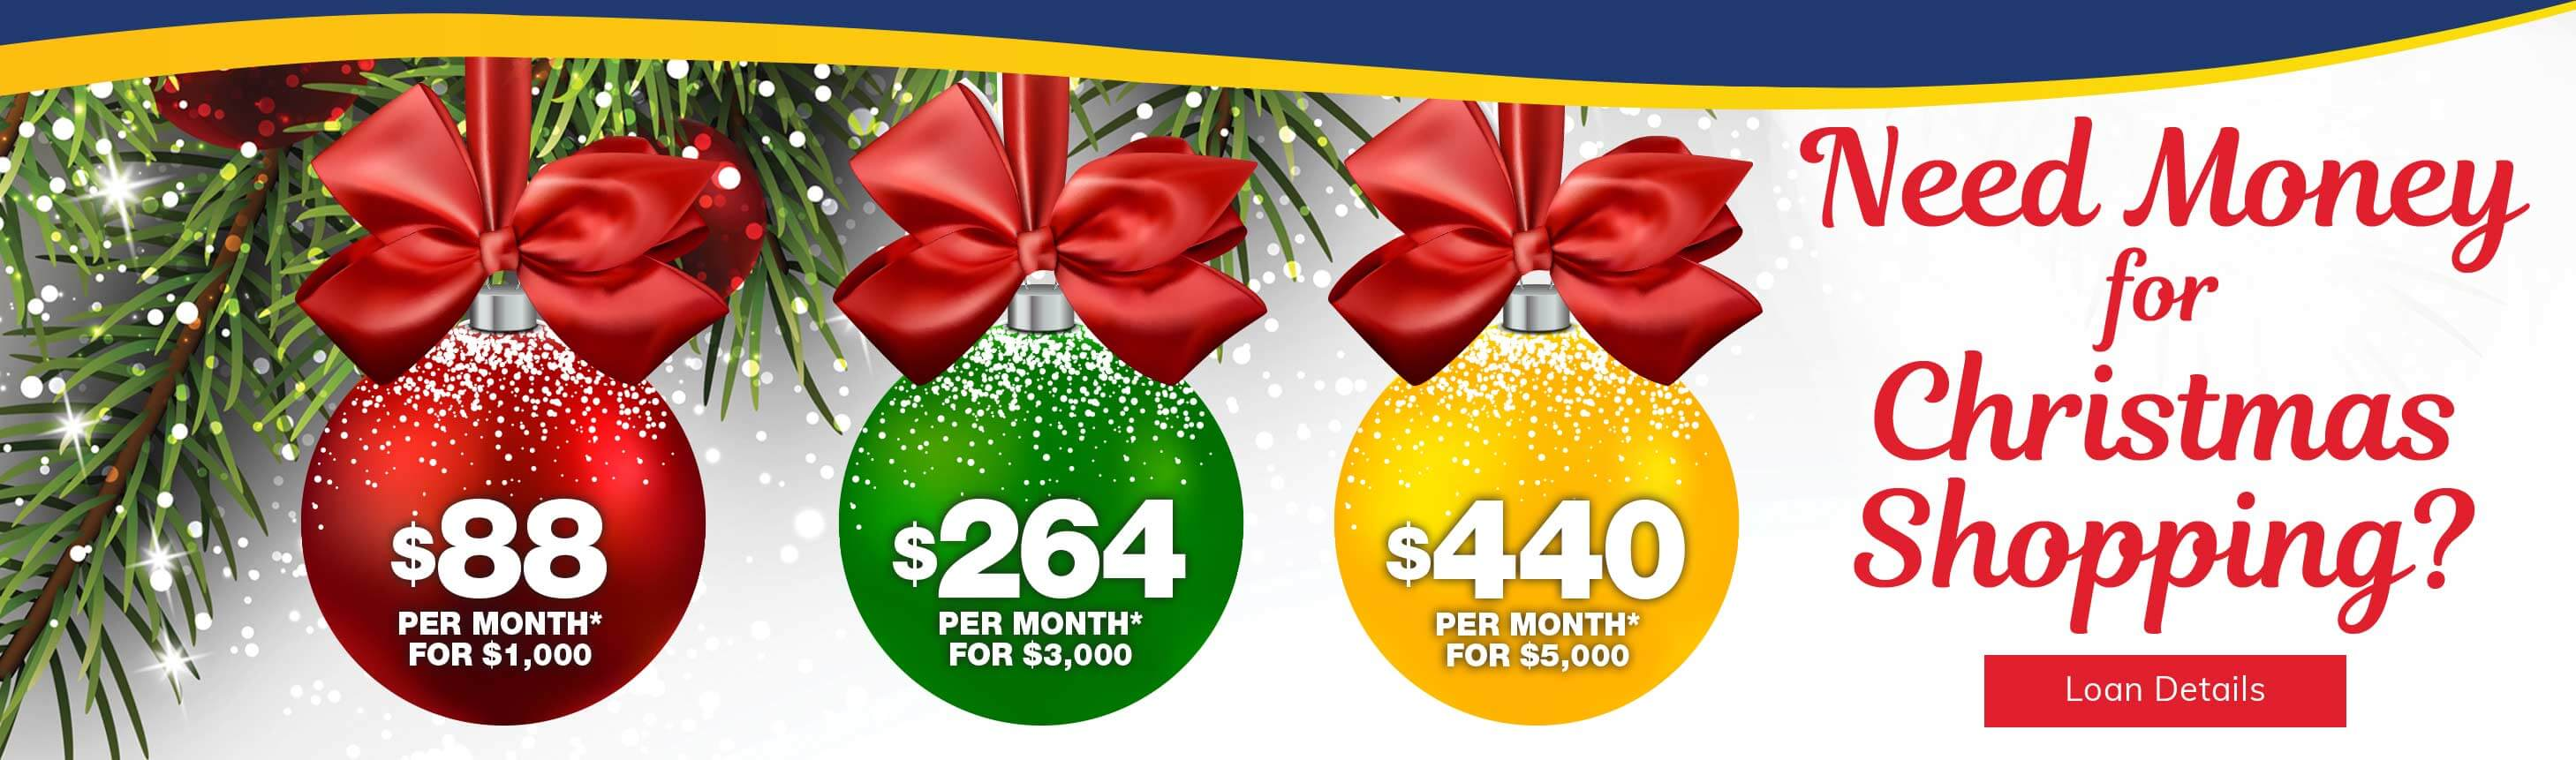 Need Money for Christmas Shopping? $88 per month for $1,000. $264 per month for $3,000. $440 per month for $5,000. Loan Details